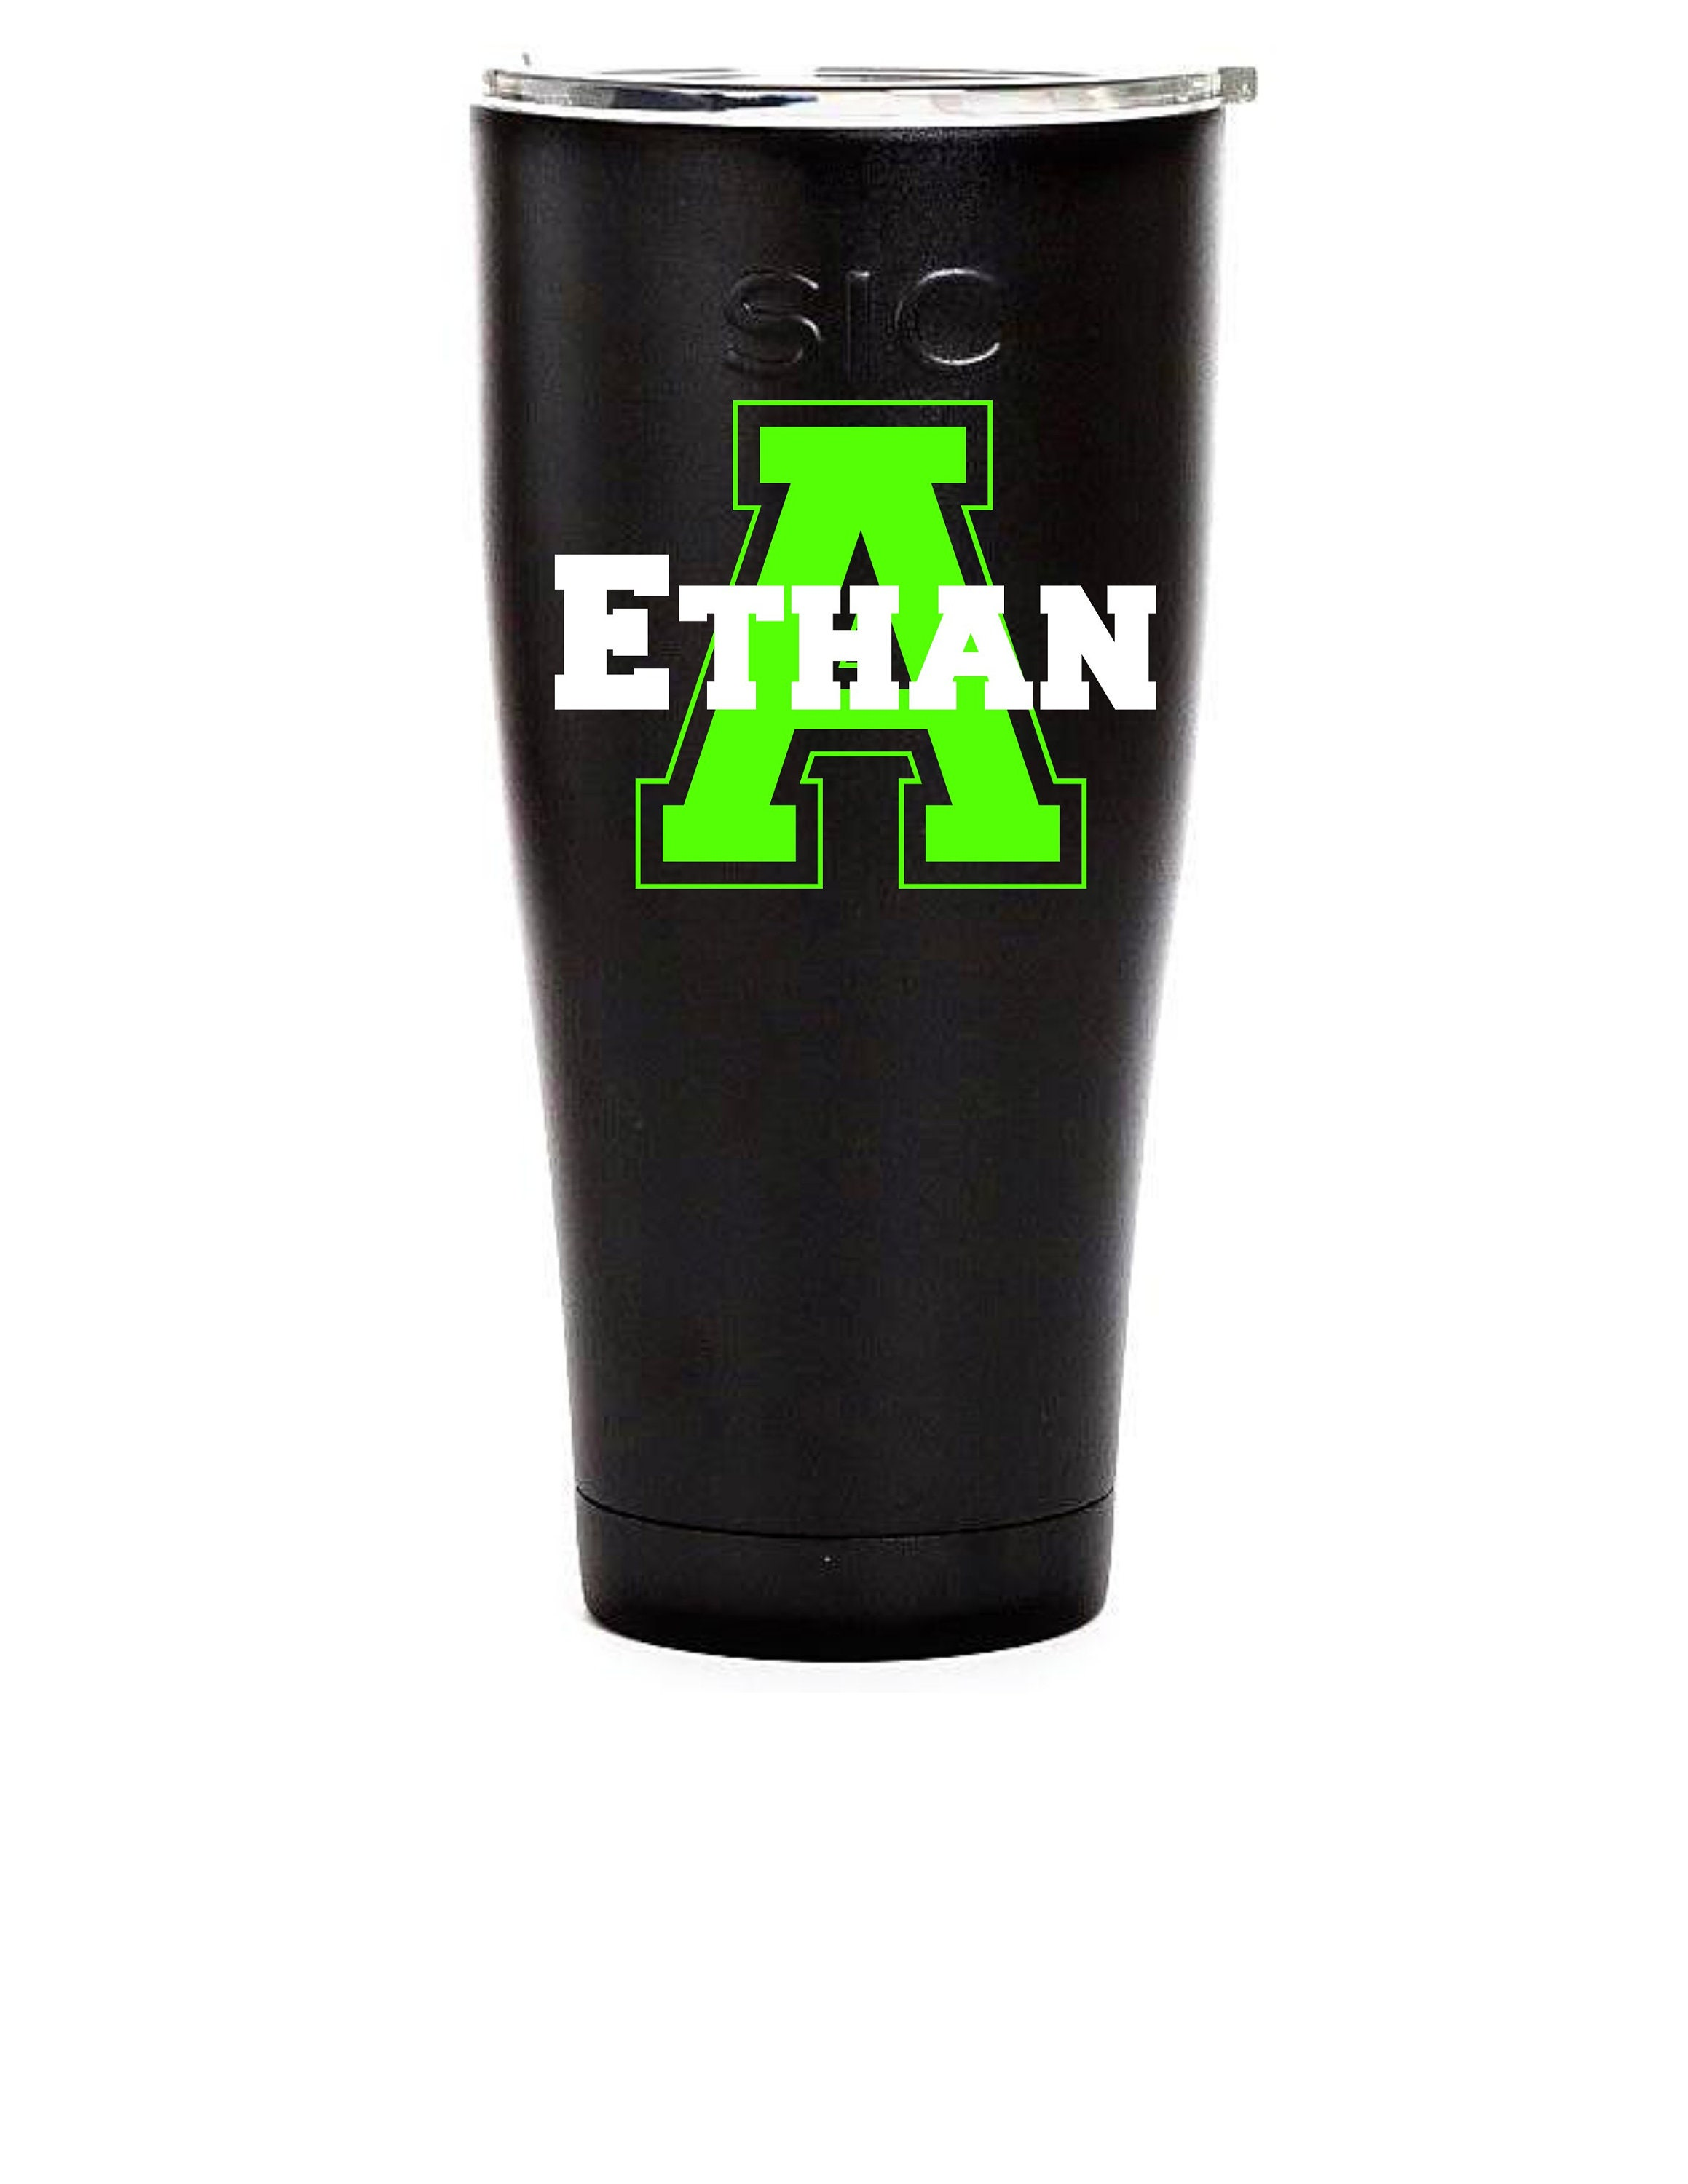 Yeti decal for guy gift for him tumbler decal for men cup decals for men decals for guys decals for him collegiate monogram